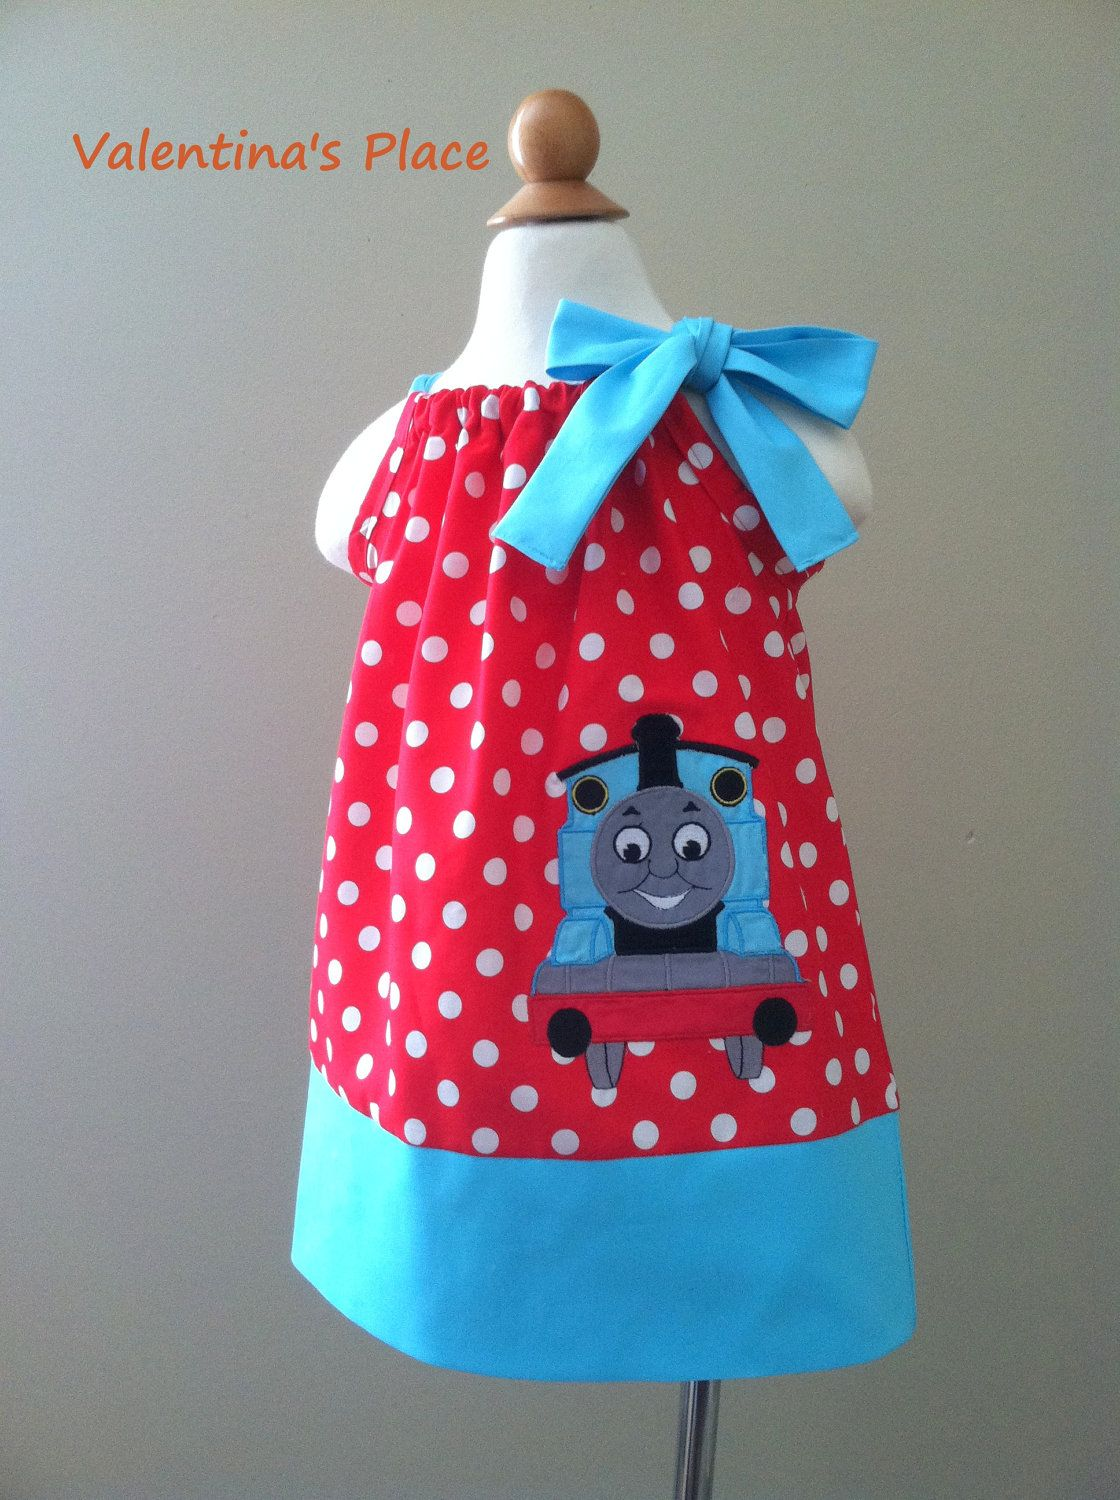 Thomas The Train Pillowcase Gorgeous Thomas The Train Pillowcase Style Dress For Girls  Birthdays Decorating Inspiration